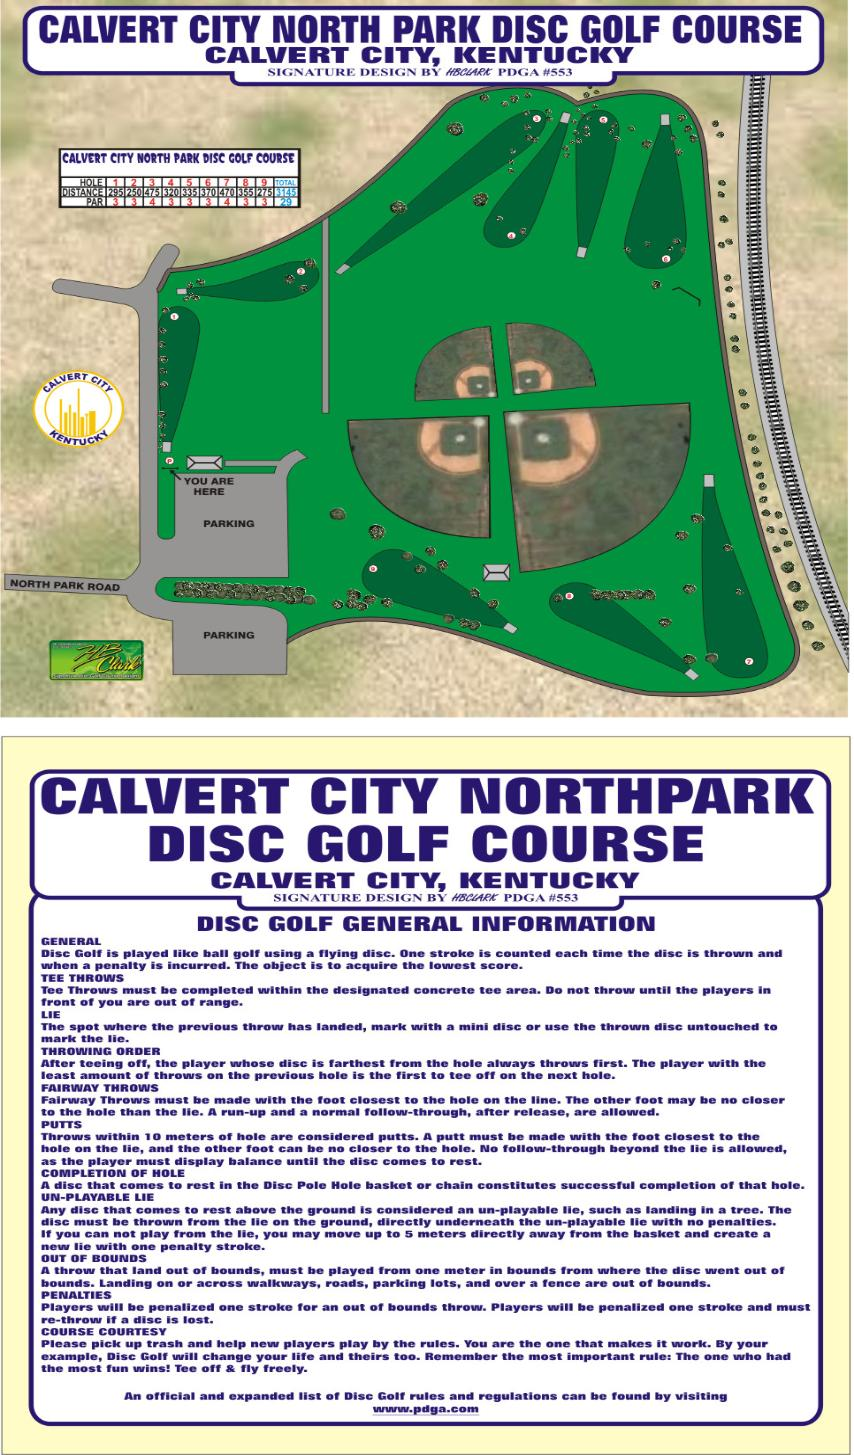 calvert city dating site The city of paducah is financially sustainable, provides first class services delivered in a cost effective manner and has quality infrastructure and facilities.